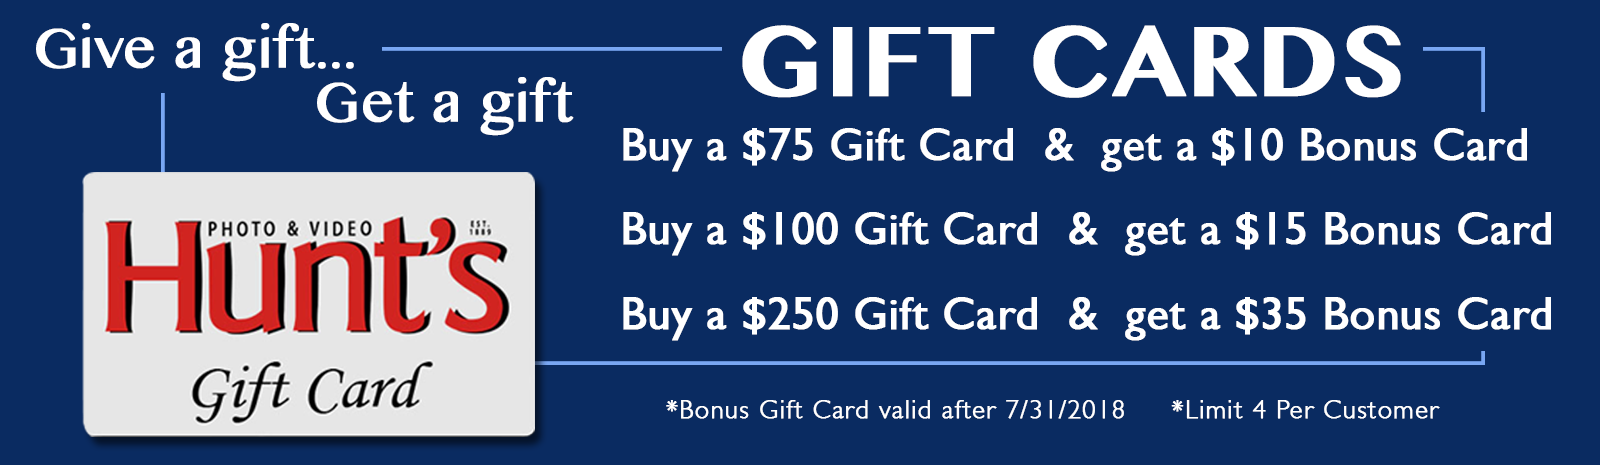 Hunt's Photo Gift Card -- Give a Gift, Get a Gift!